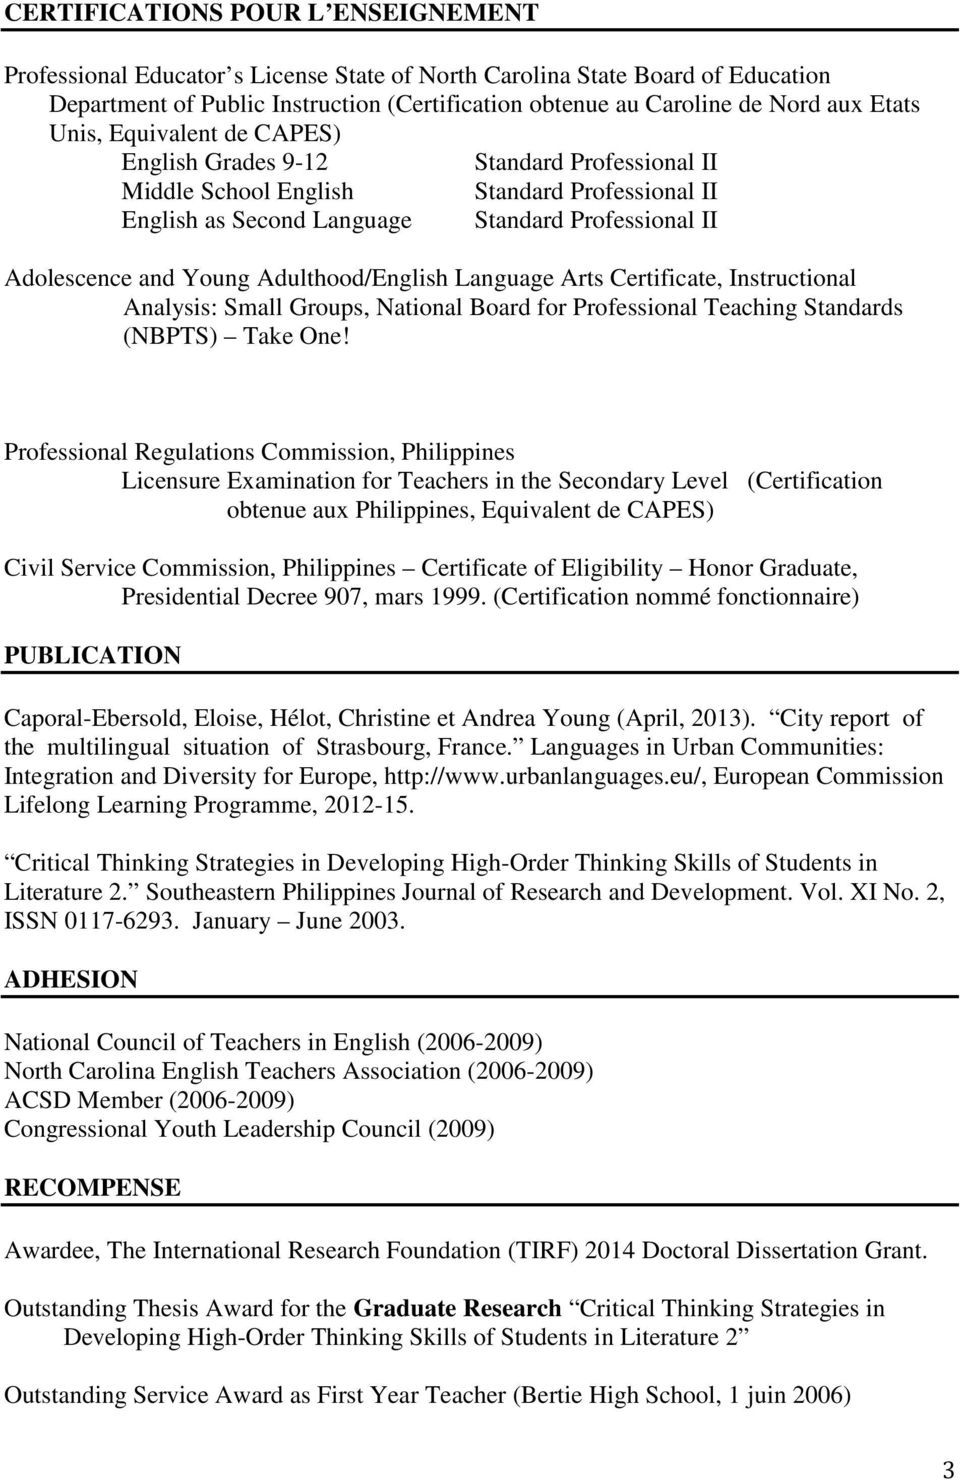 Adulthood/English Language Arts Certificate, Instructional Analysis: Small Groups, National Board for Professional Teaching Standards (NBPTS) Take One!